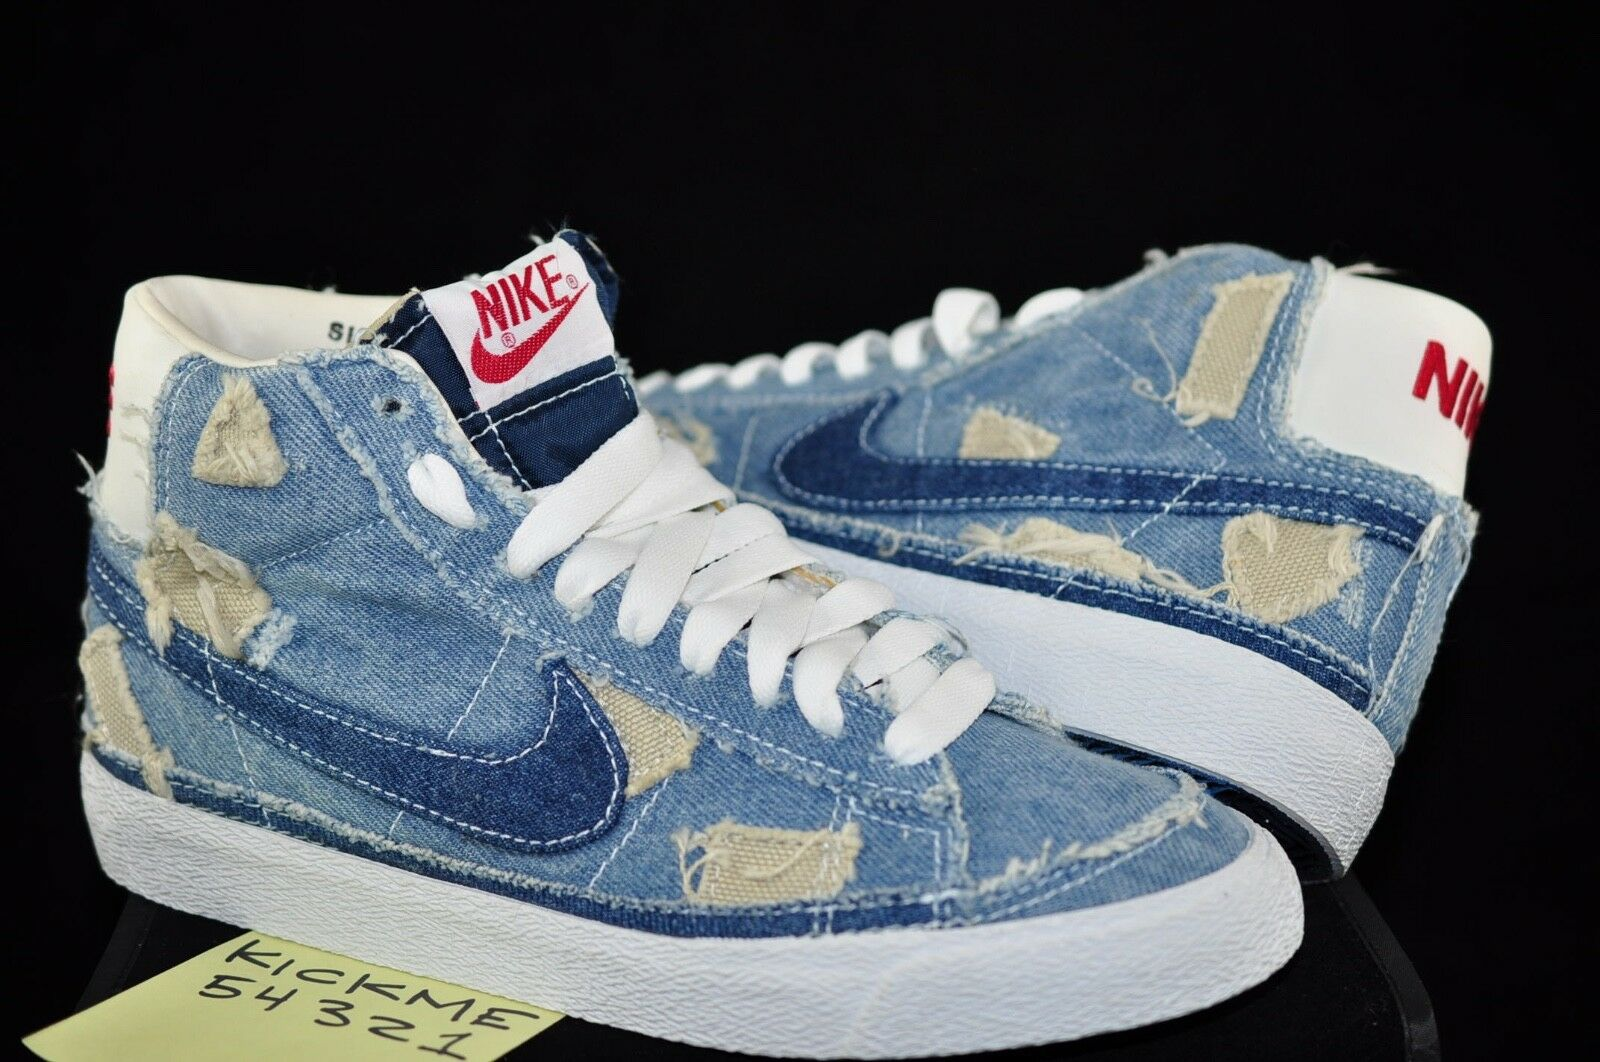 fd05e322191b3 2003 NIKE WOMENS BLAZER MID TWO TONE PATCH 7 SUPREME OFF WHITE DS WORK  DENIM nwrpfv4629-Athletic Shoes